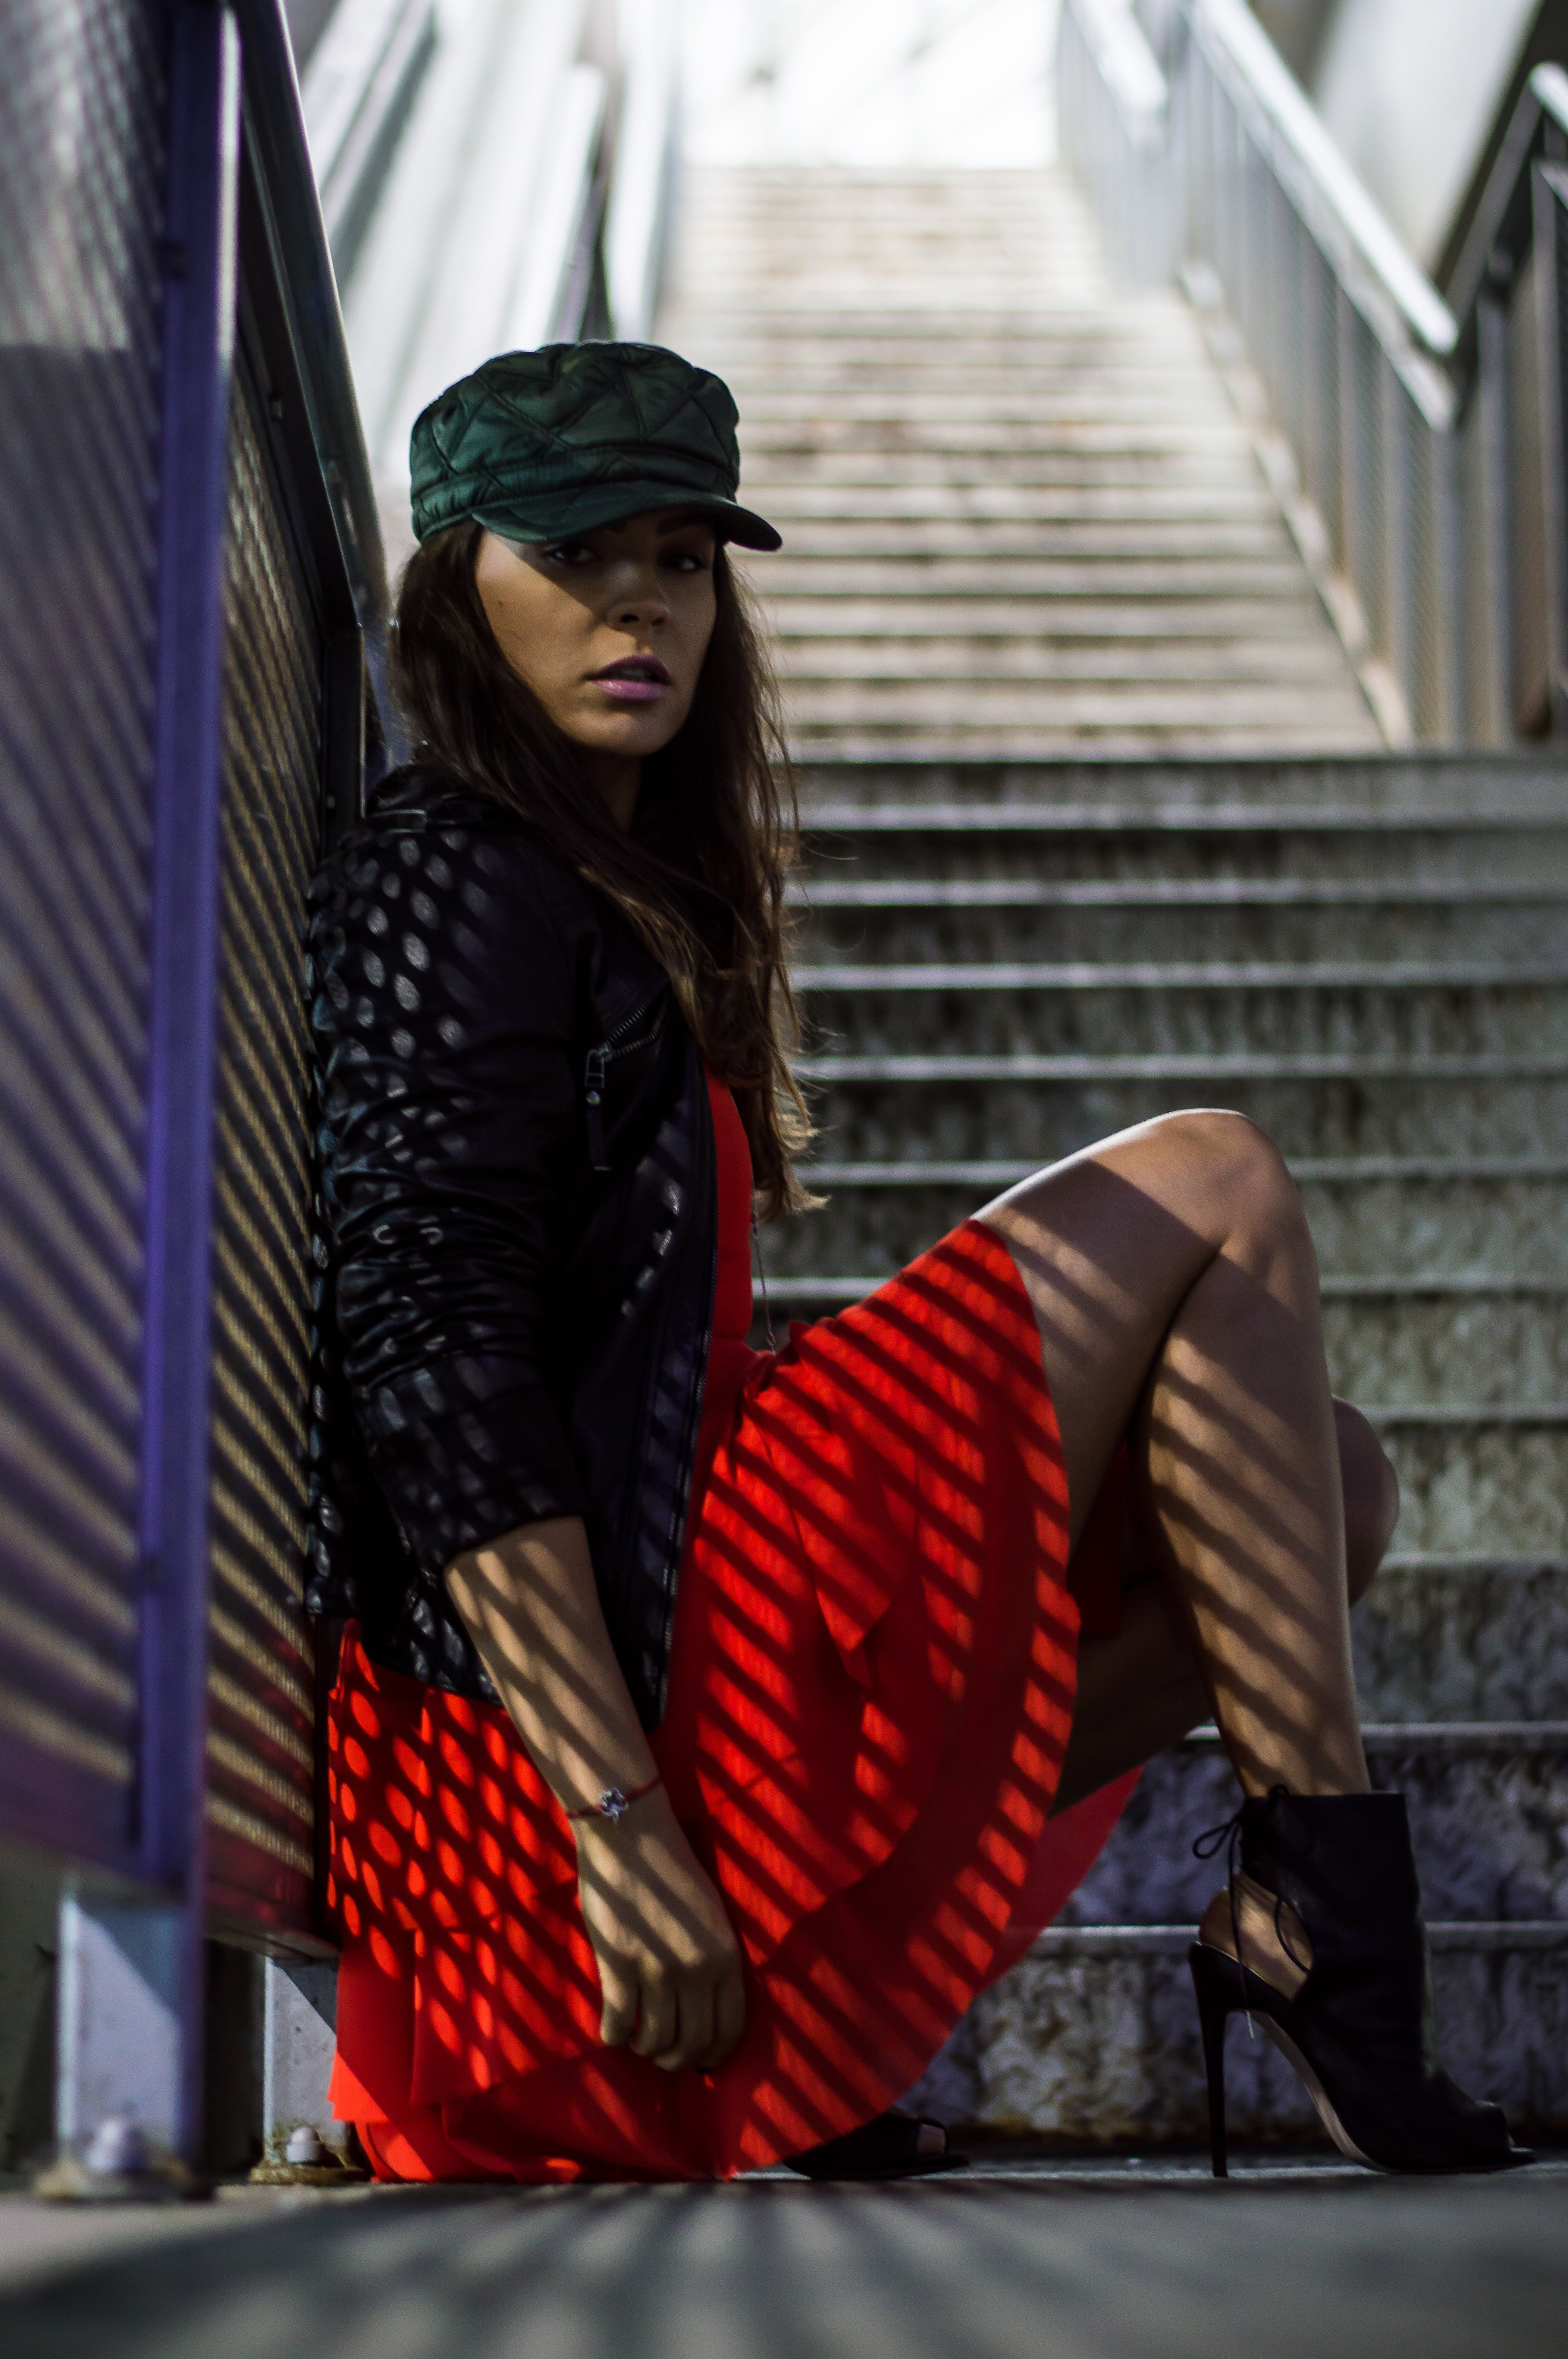 Free stock photo of stairs, fashion, red, girl